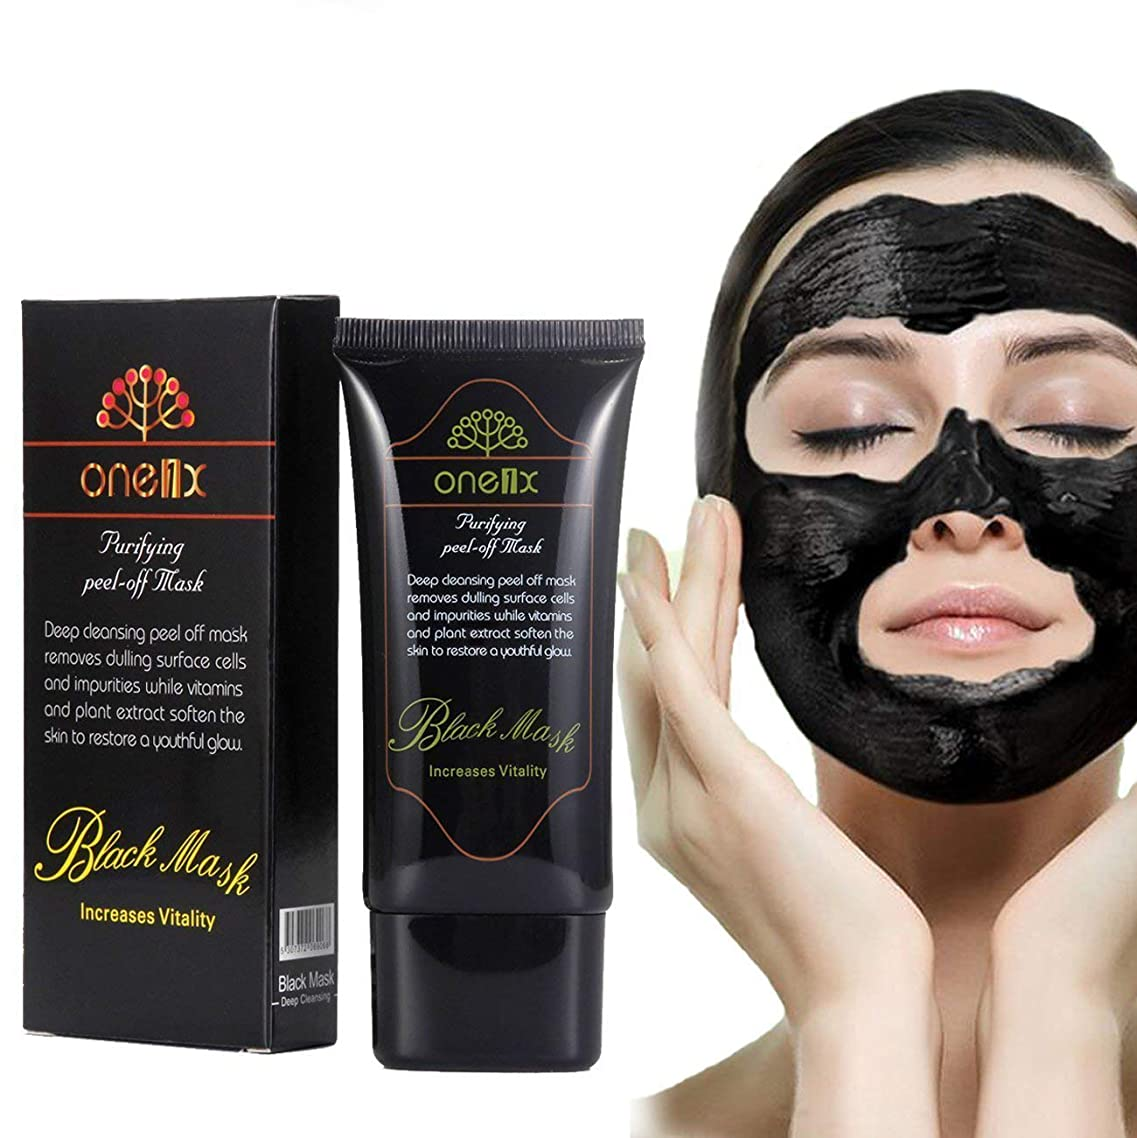 DISAAR Blackhead Activated Natural Charcoal Cleansing Mask, Wash-Off Nursing Face Masks Deep Cleansing Peel-off Mask,Black Mud Face Mask 50ml